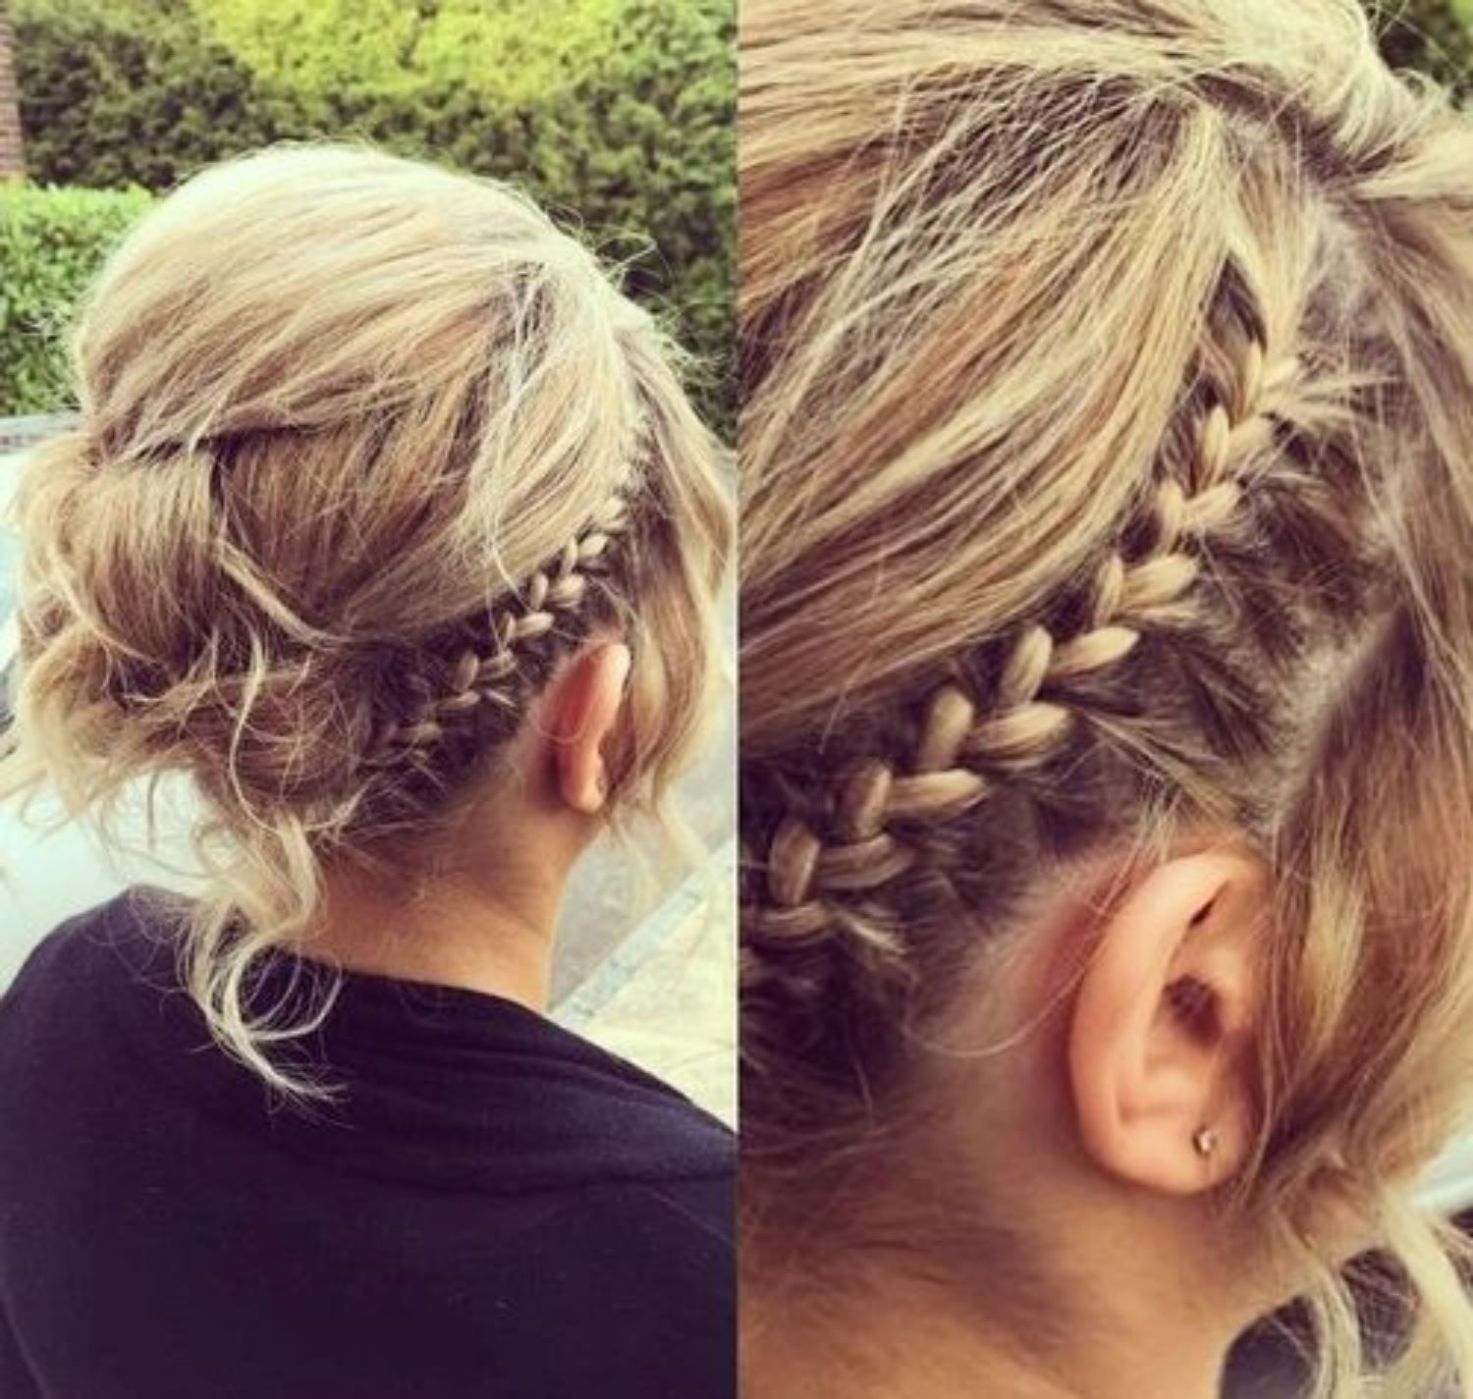 60 Updos For Thin Hair That Score Maximum Style Point Thin Hair Updo Hairstyles For Thin Hair Braids For Thin Hair